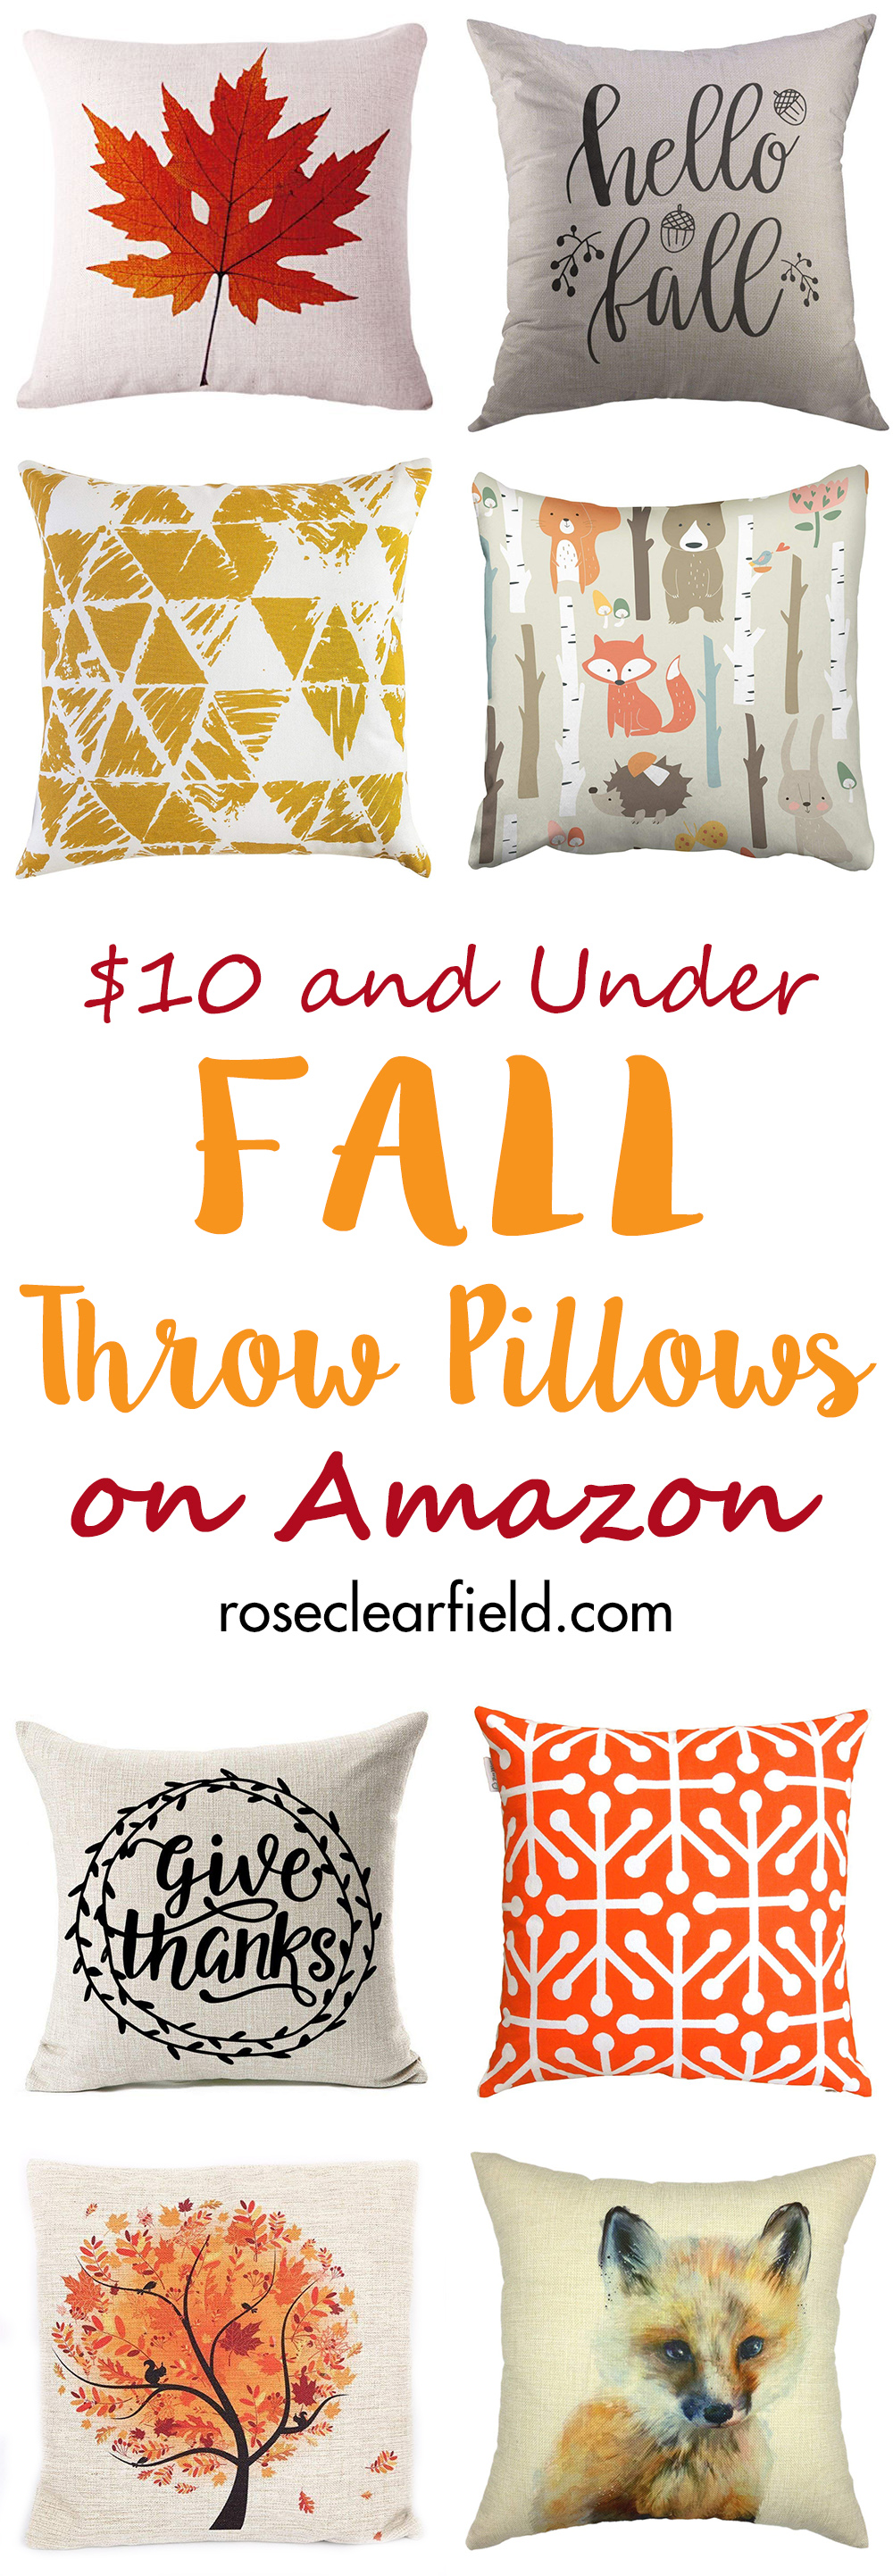 $10 and Under Fall Throw Pillows on Amazon | https://www.roseclearfield.com